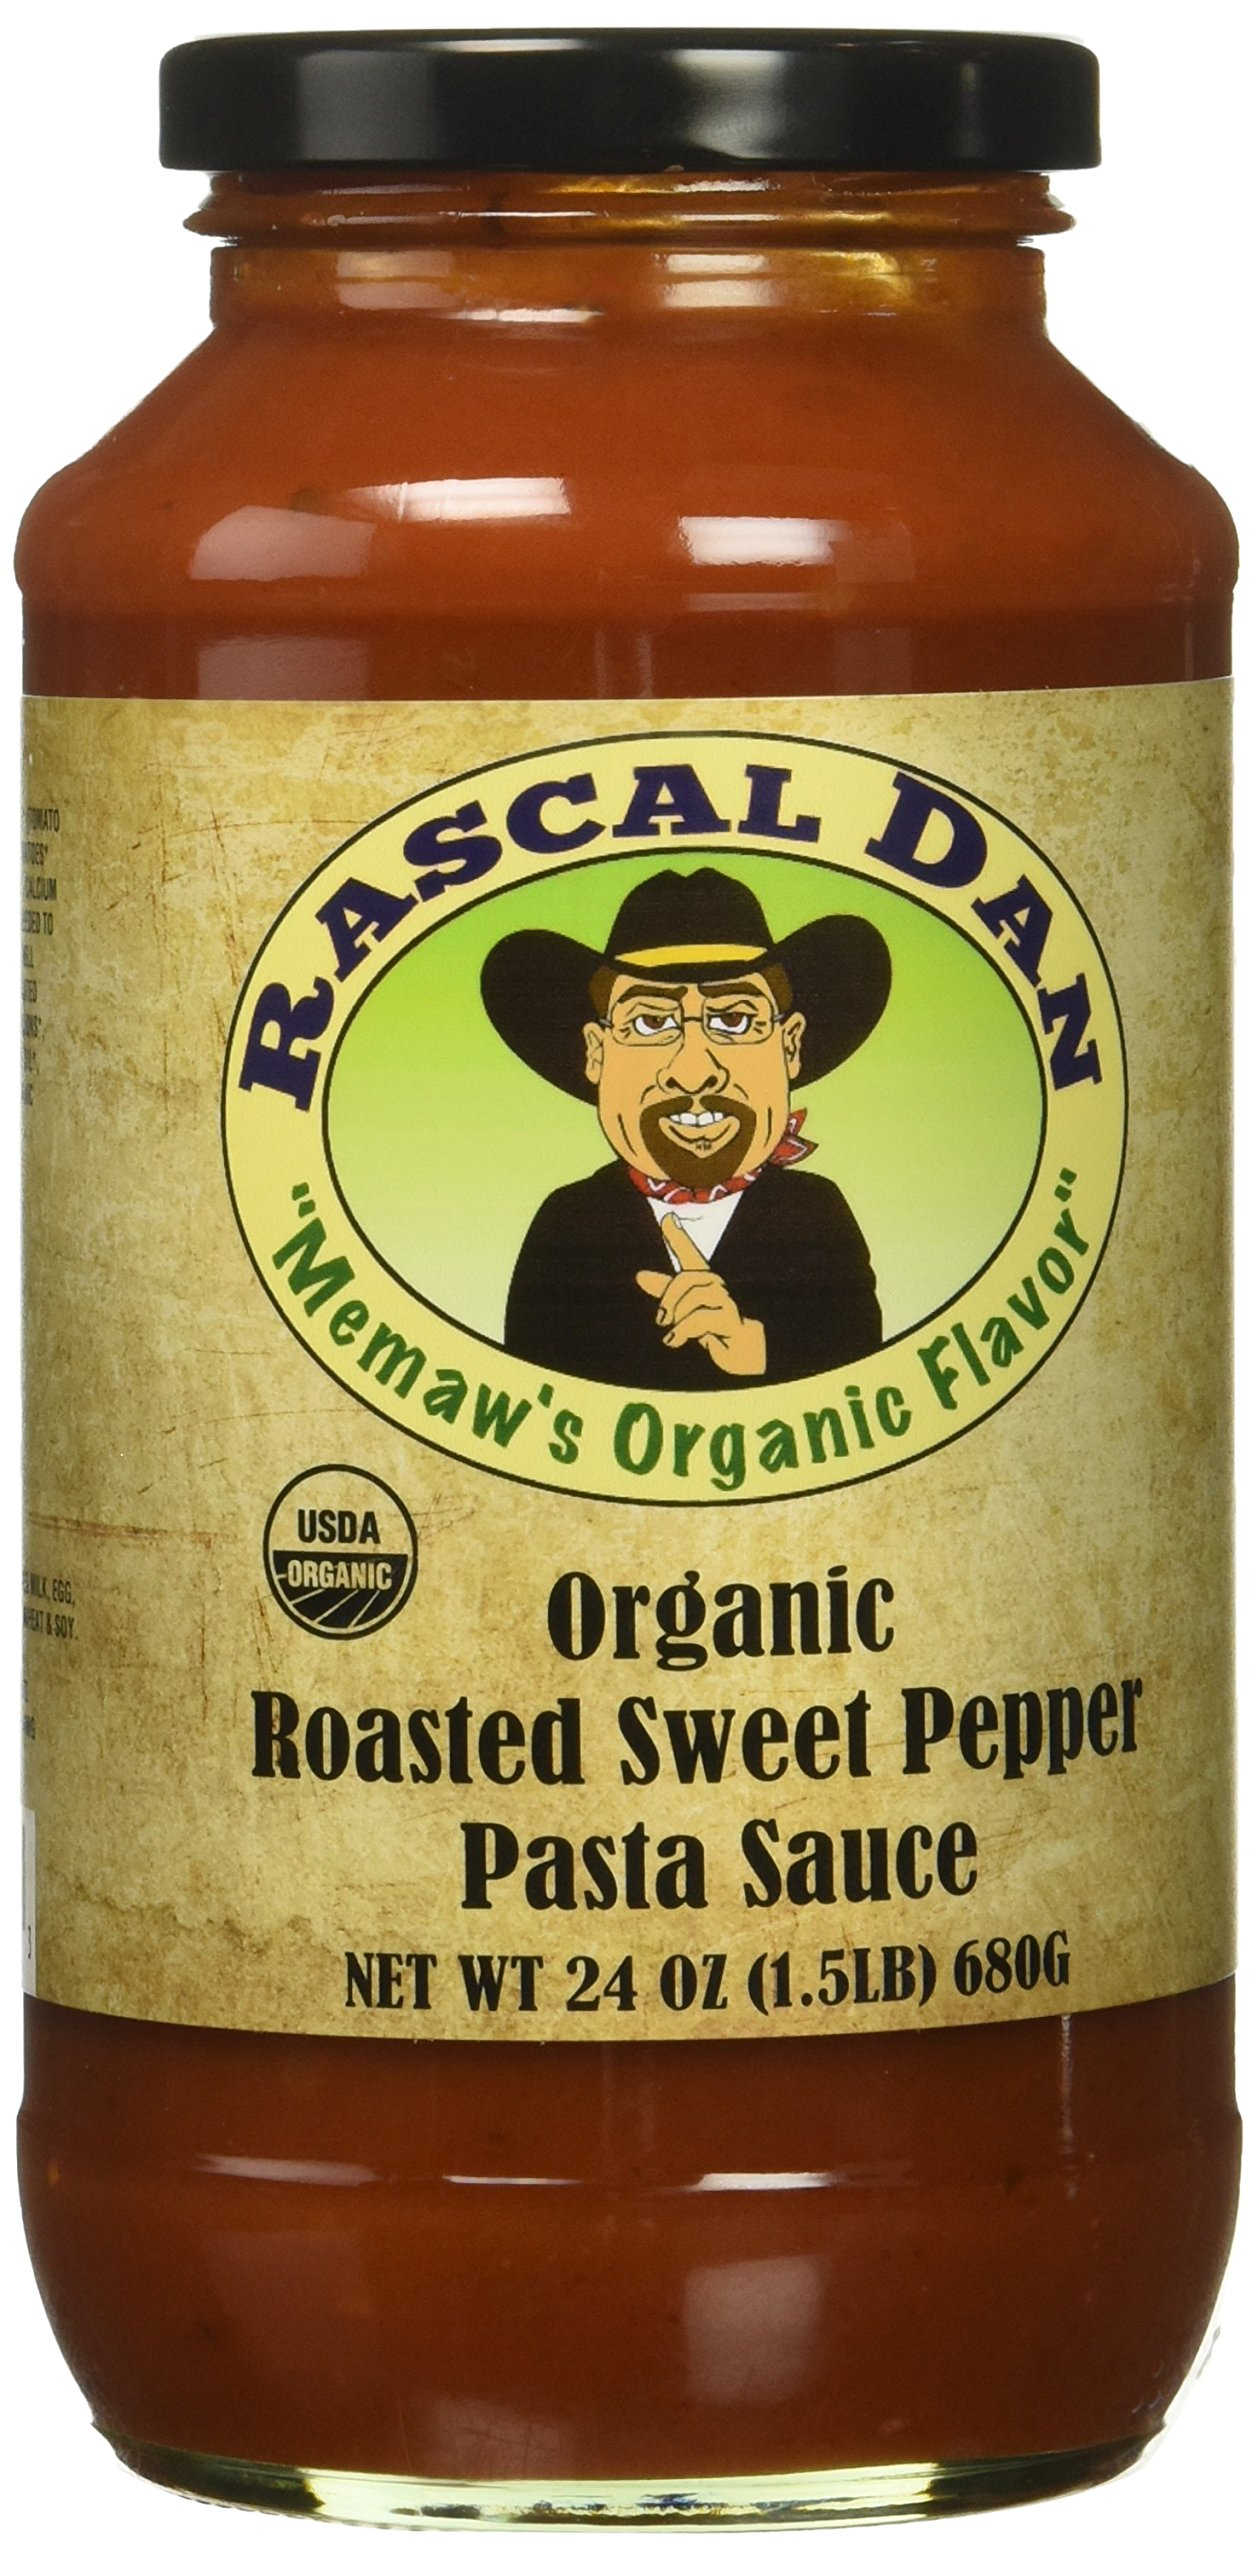 Rascal Dan Organic Food Products Pasta Family Meal with Roasted Sweet Pepper Sauce